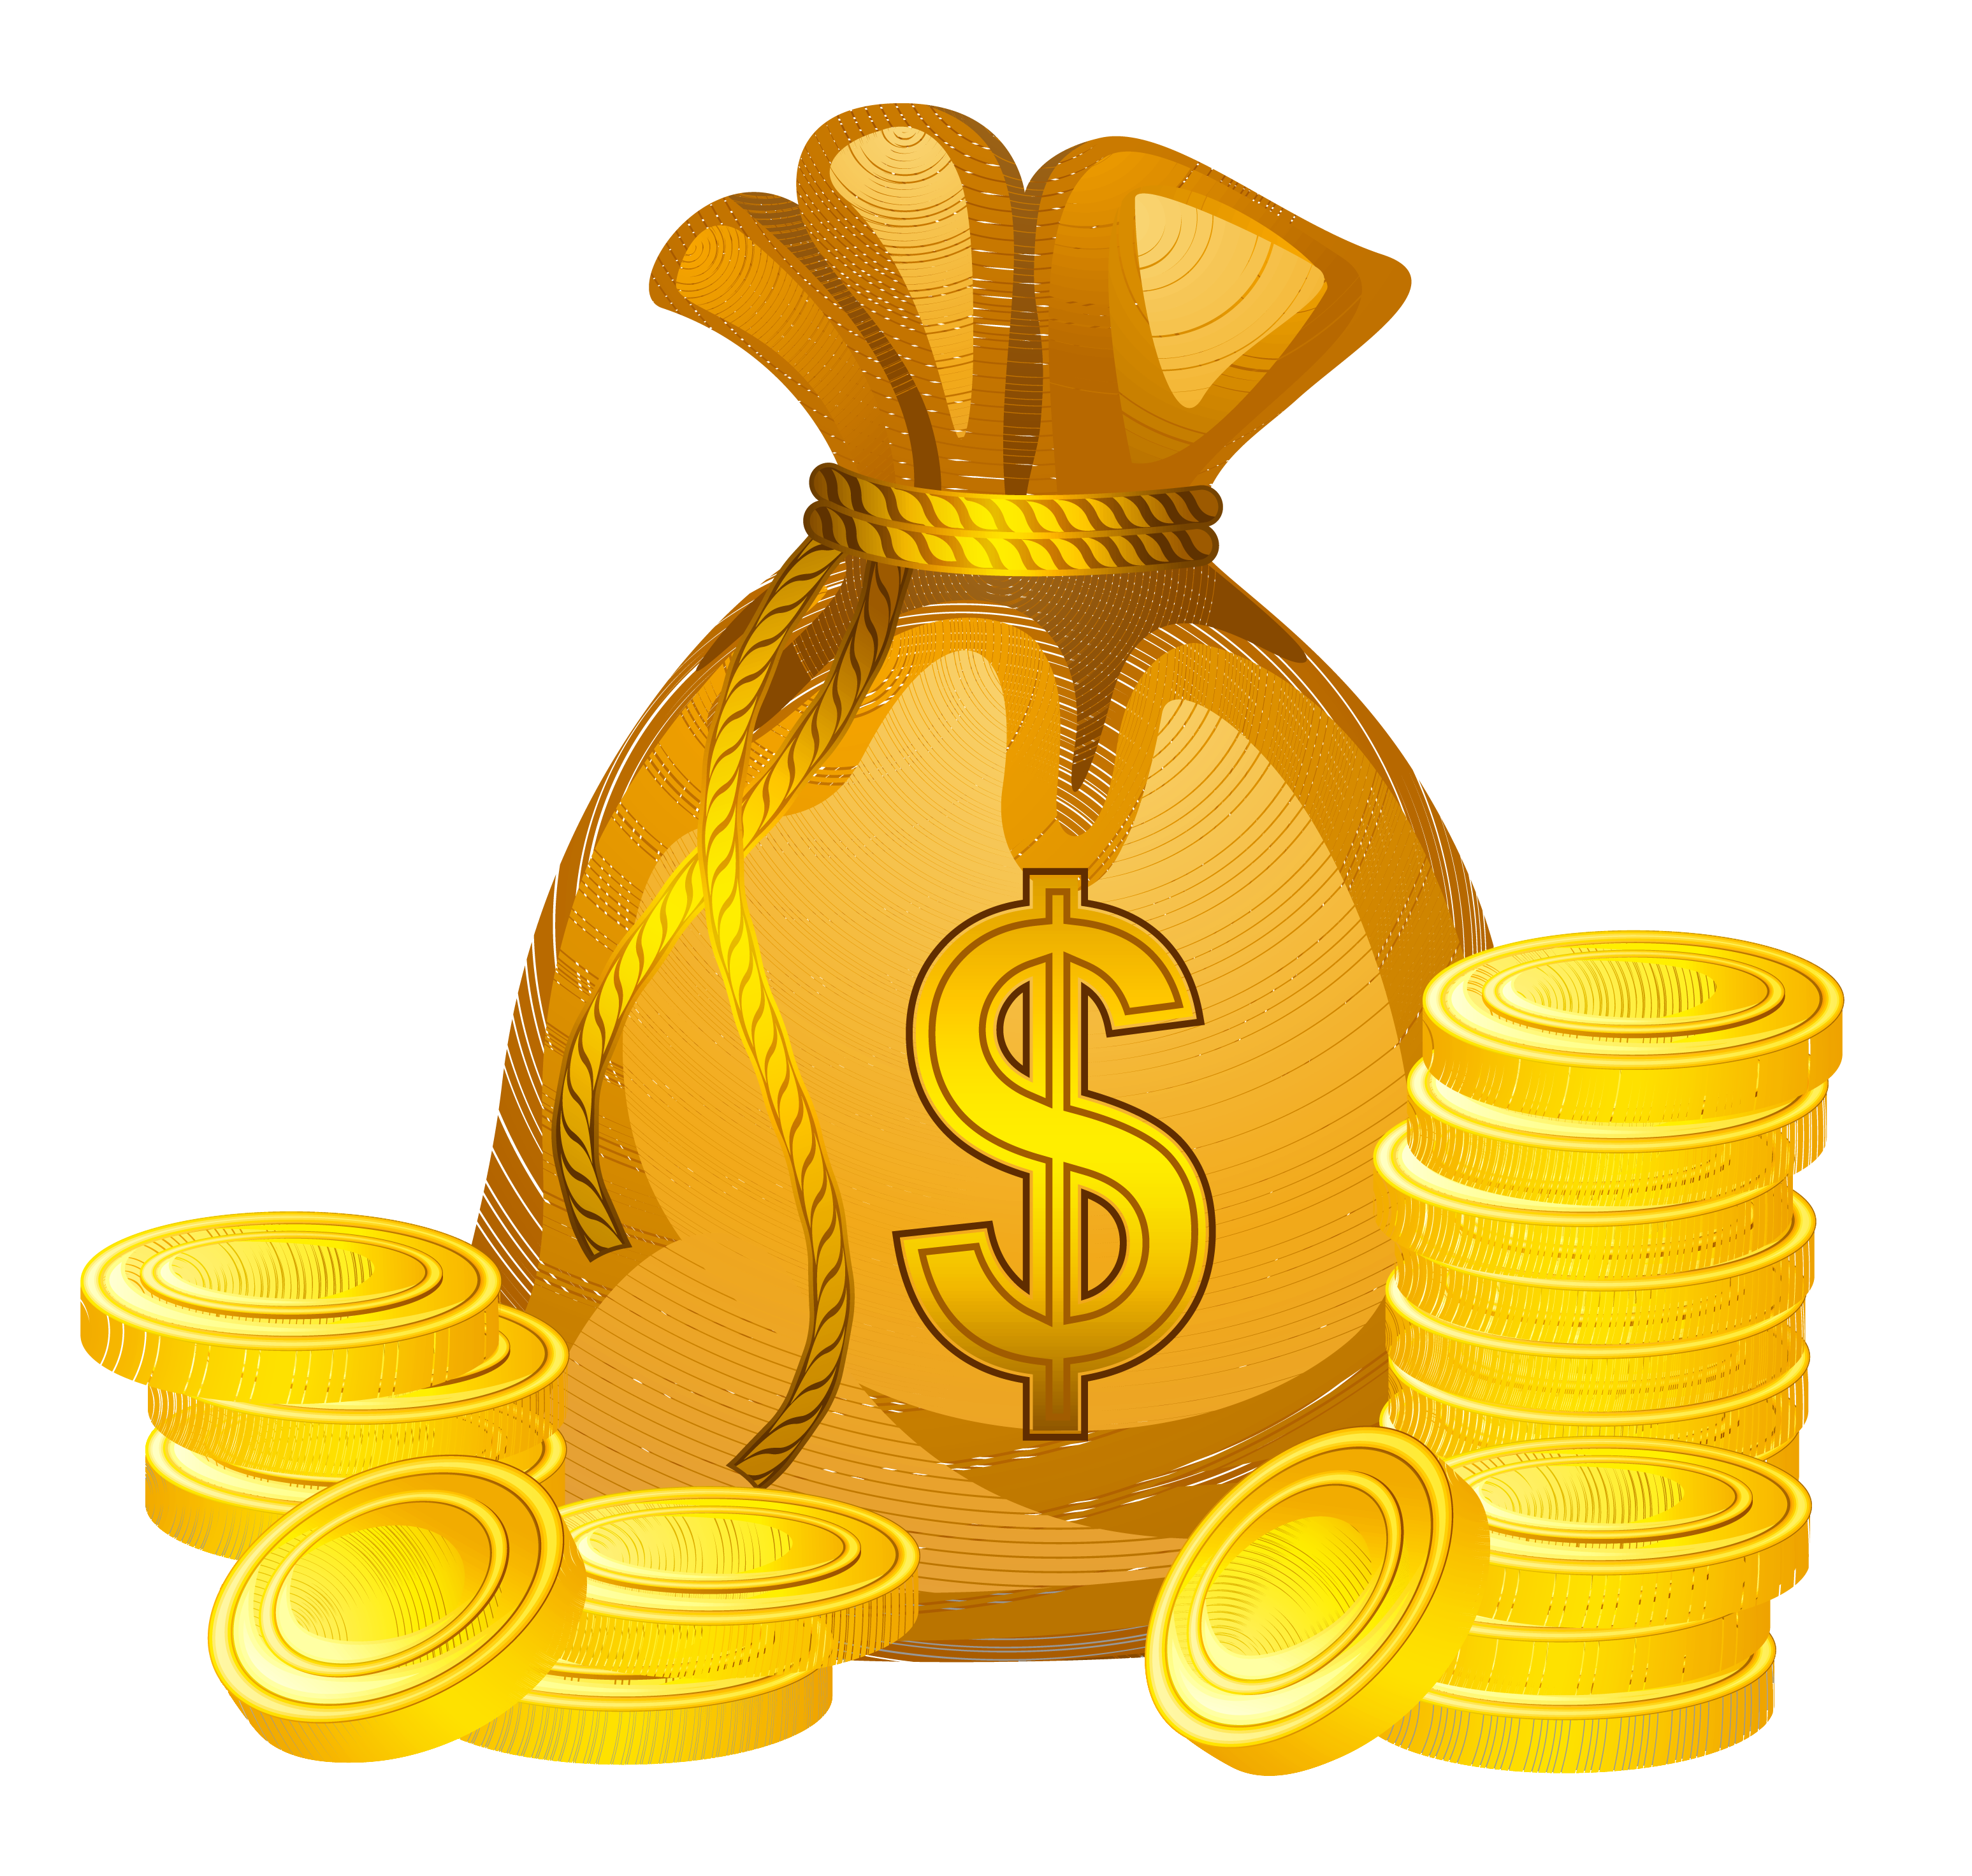 Clipart money bag cash gold jpg freeuse download 28+ Collection of Money Clipart Png   High quality, free cliparts ... jpg freeuse download